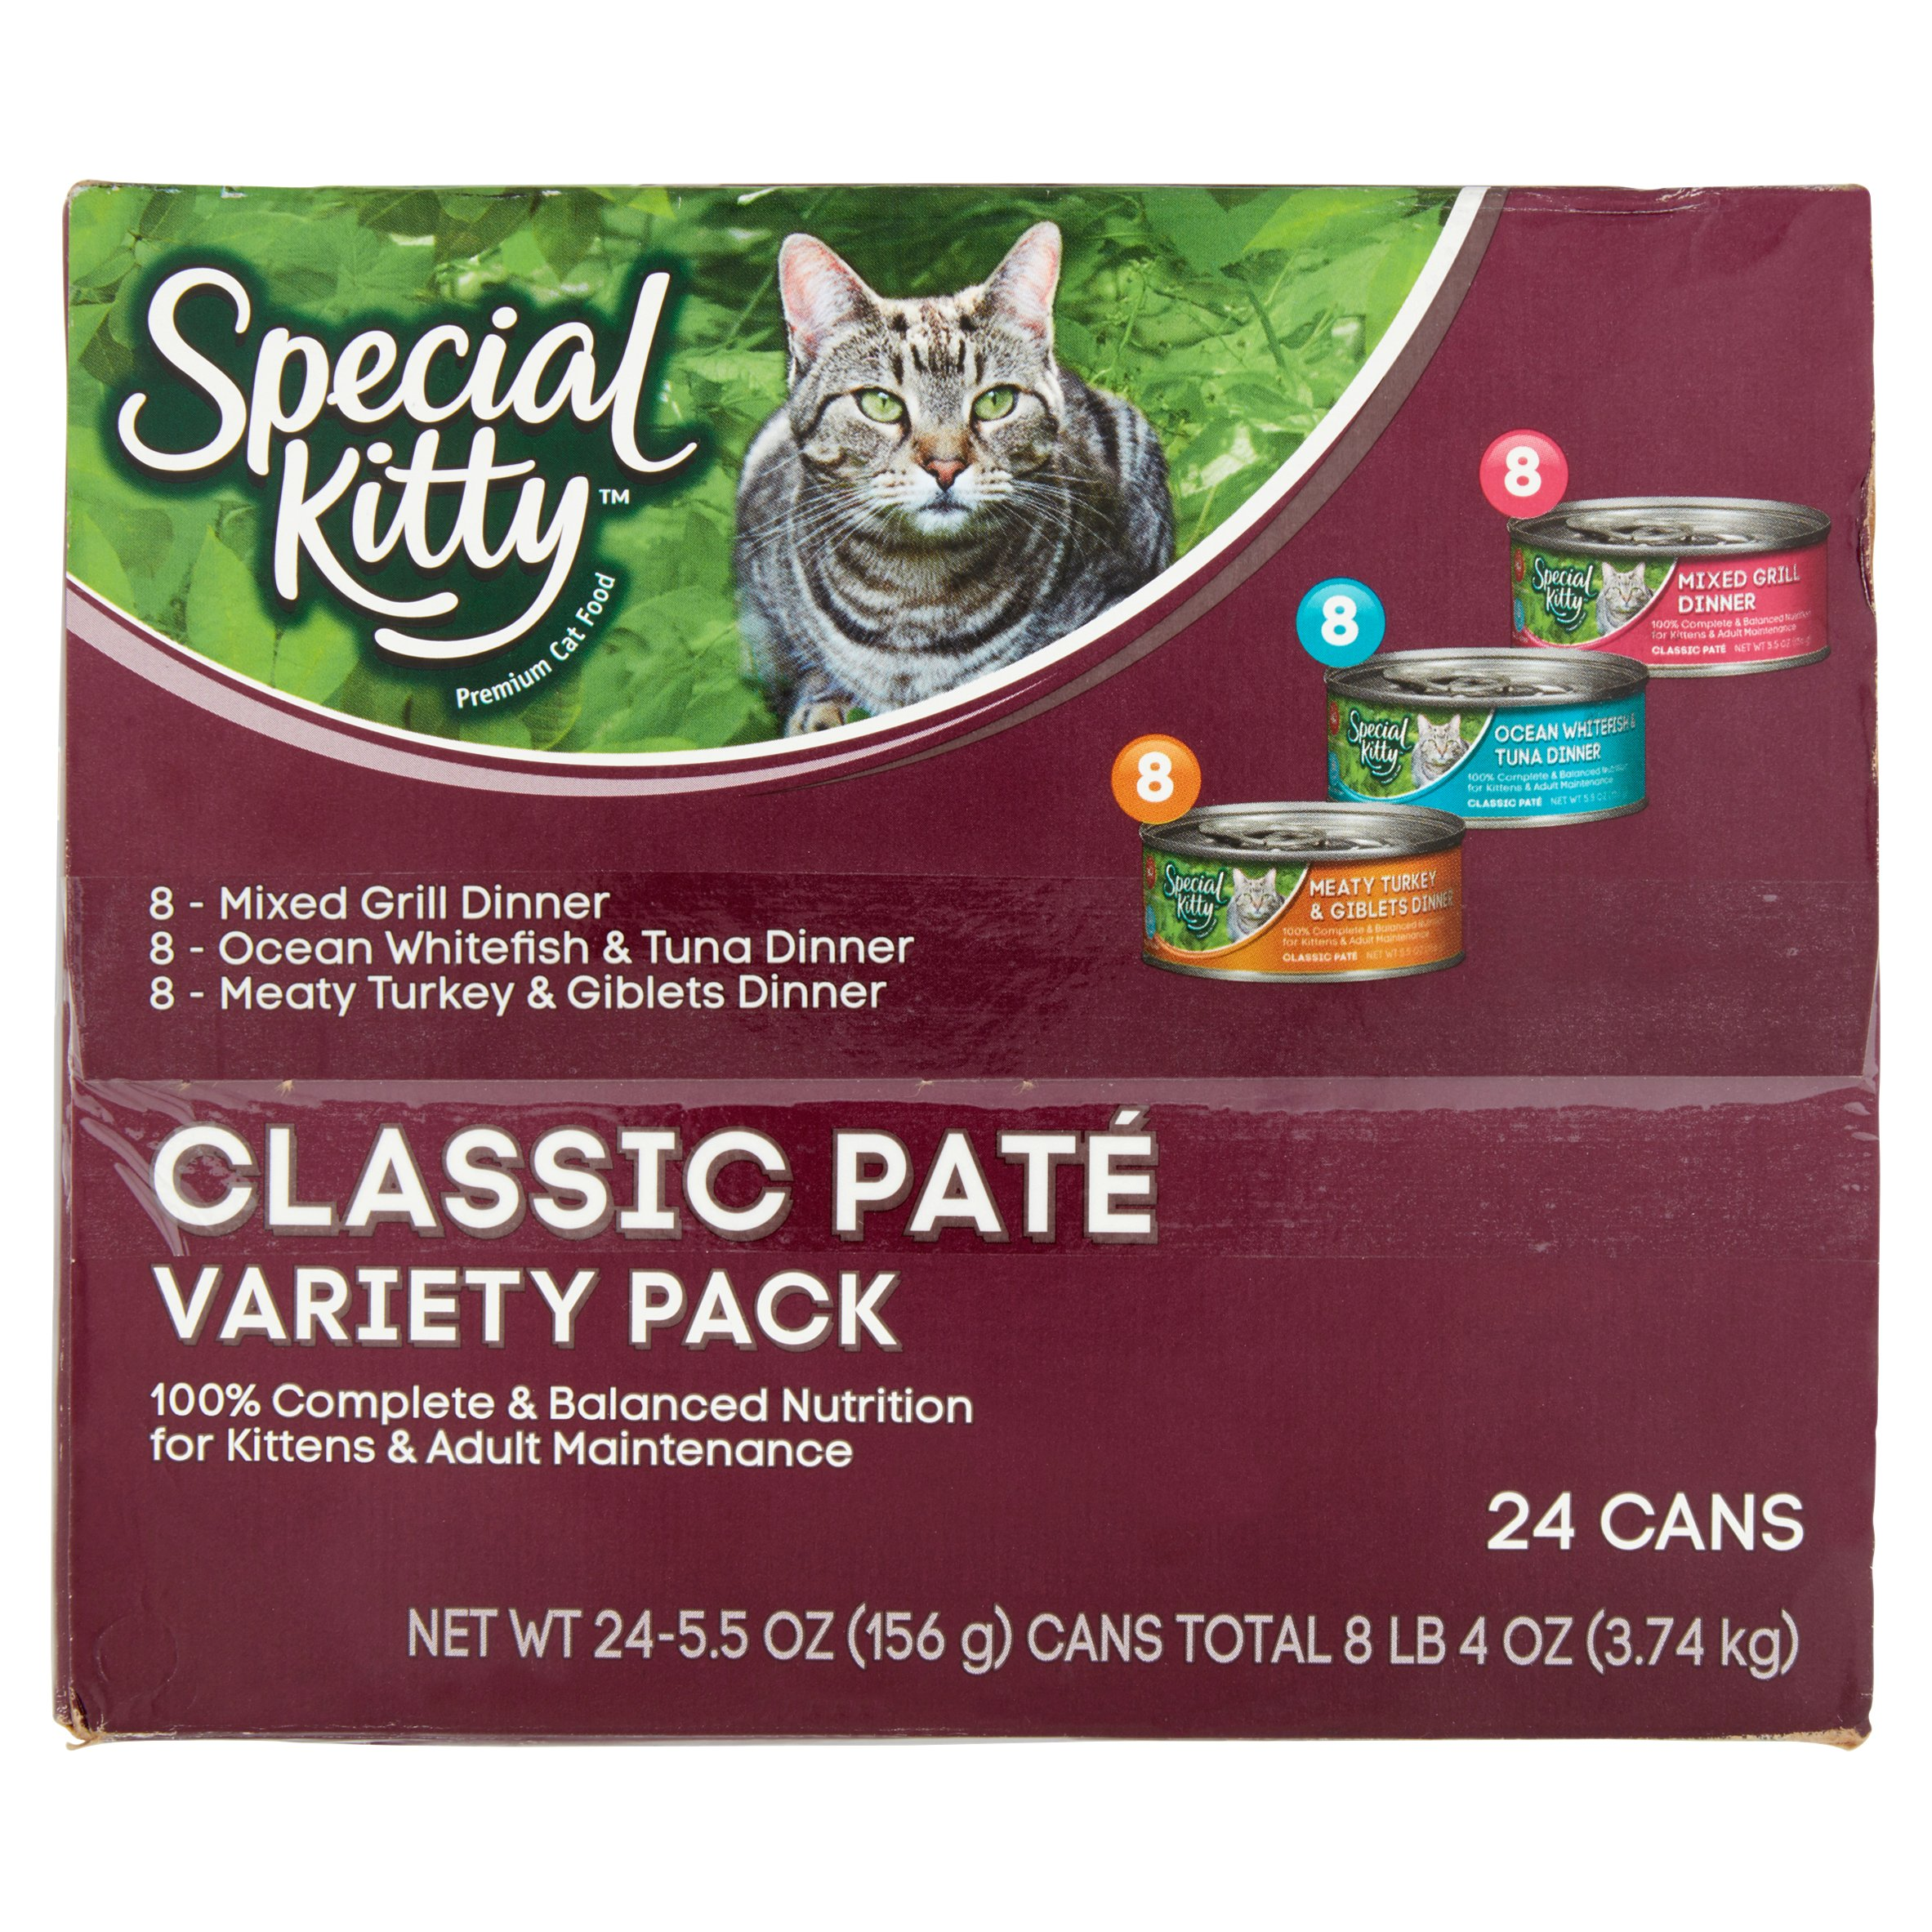 Special kitty adult cat food